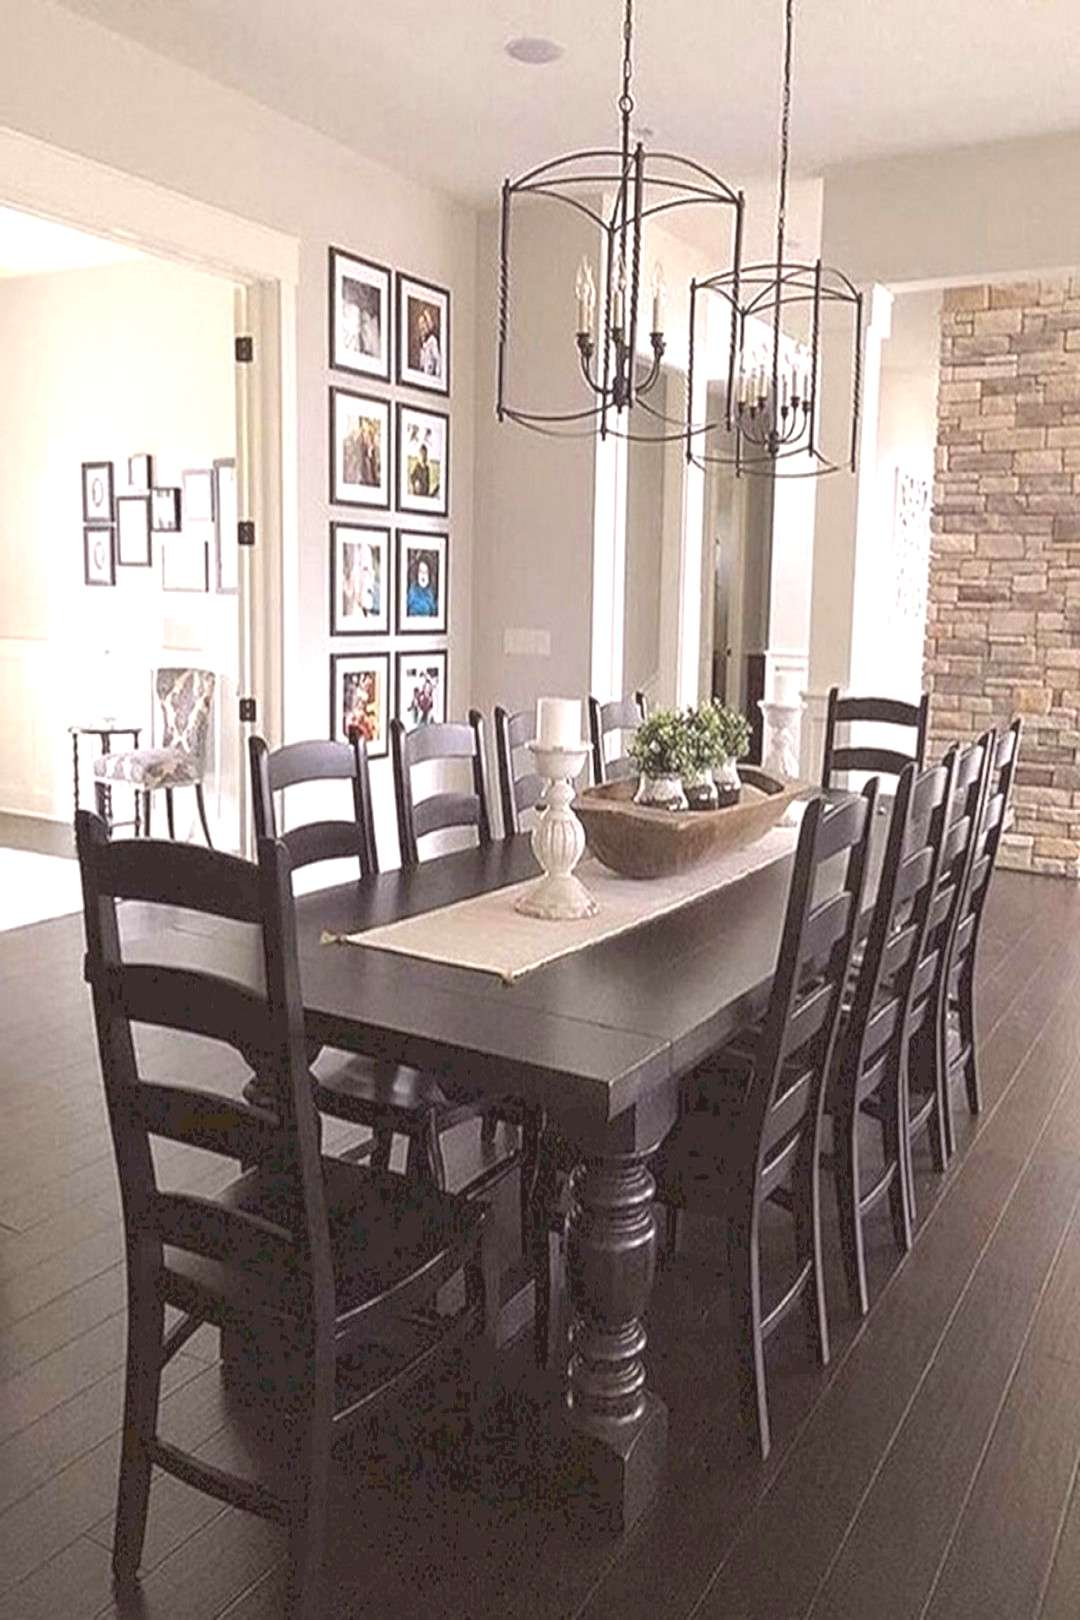 Top 12+ Farmhouse Dining Room Style Decoration Ideas To Increase Your Appetite